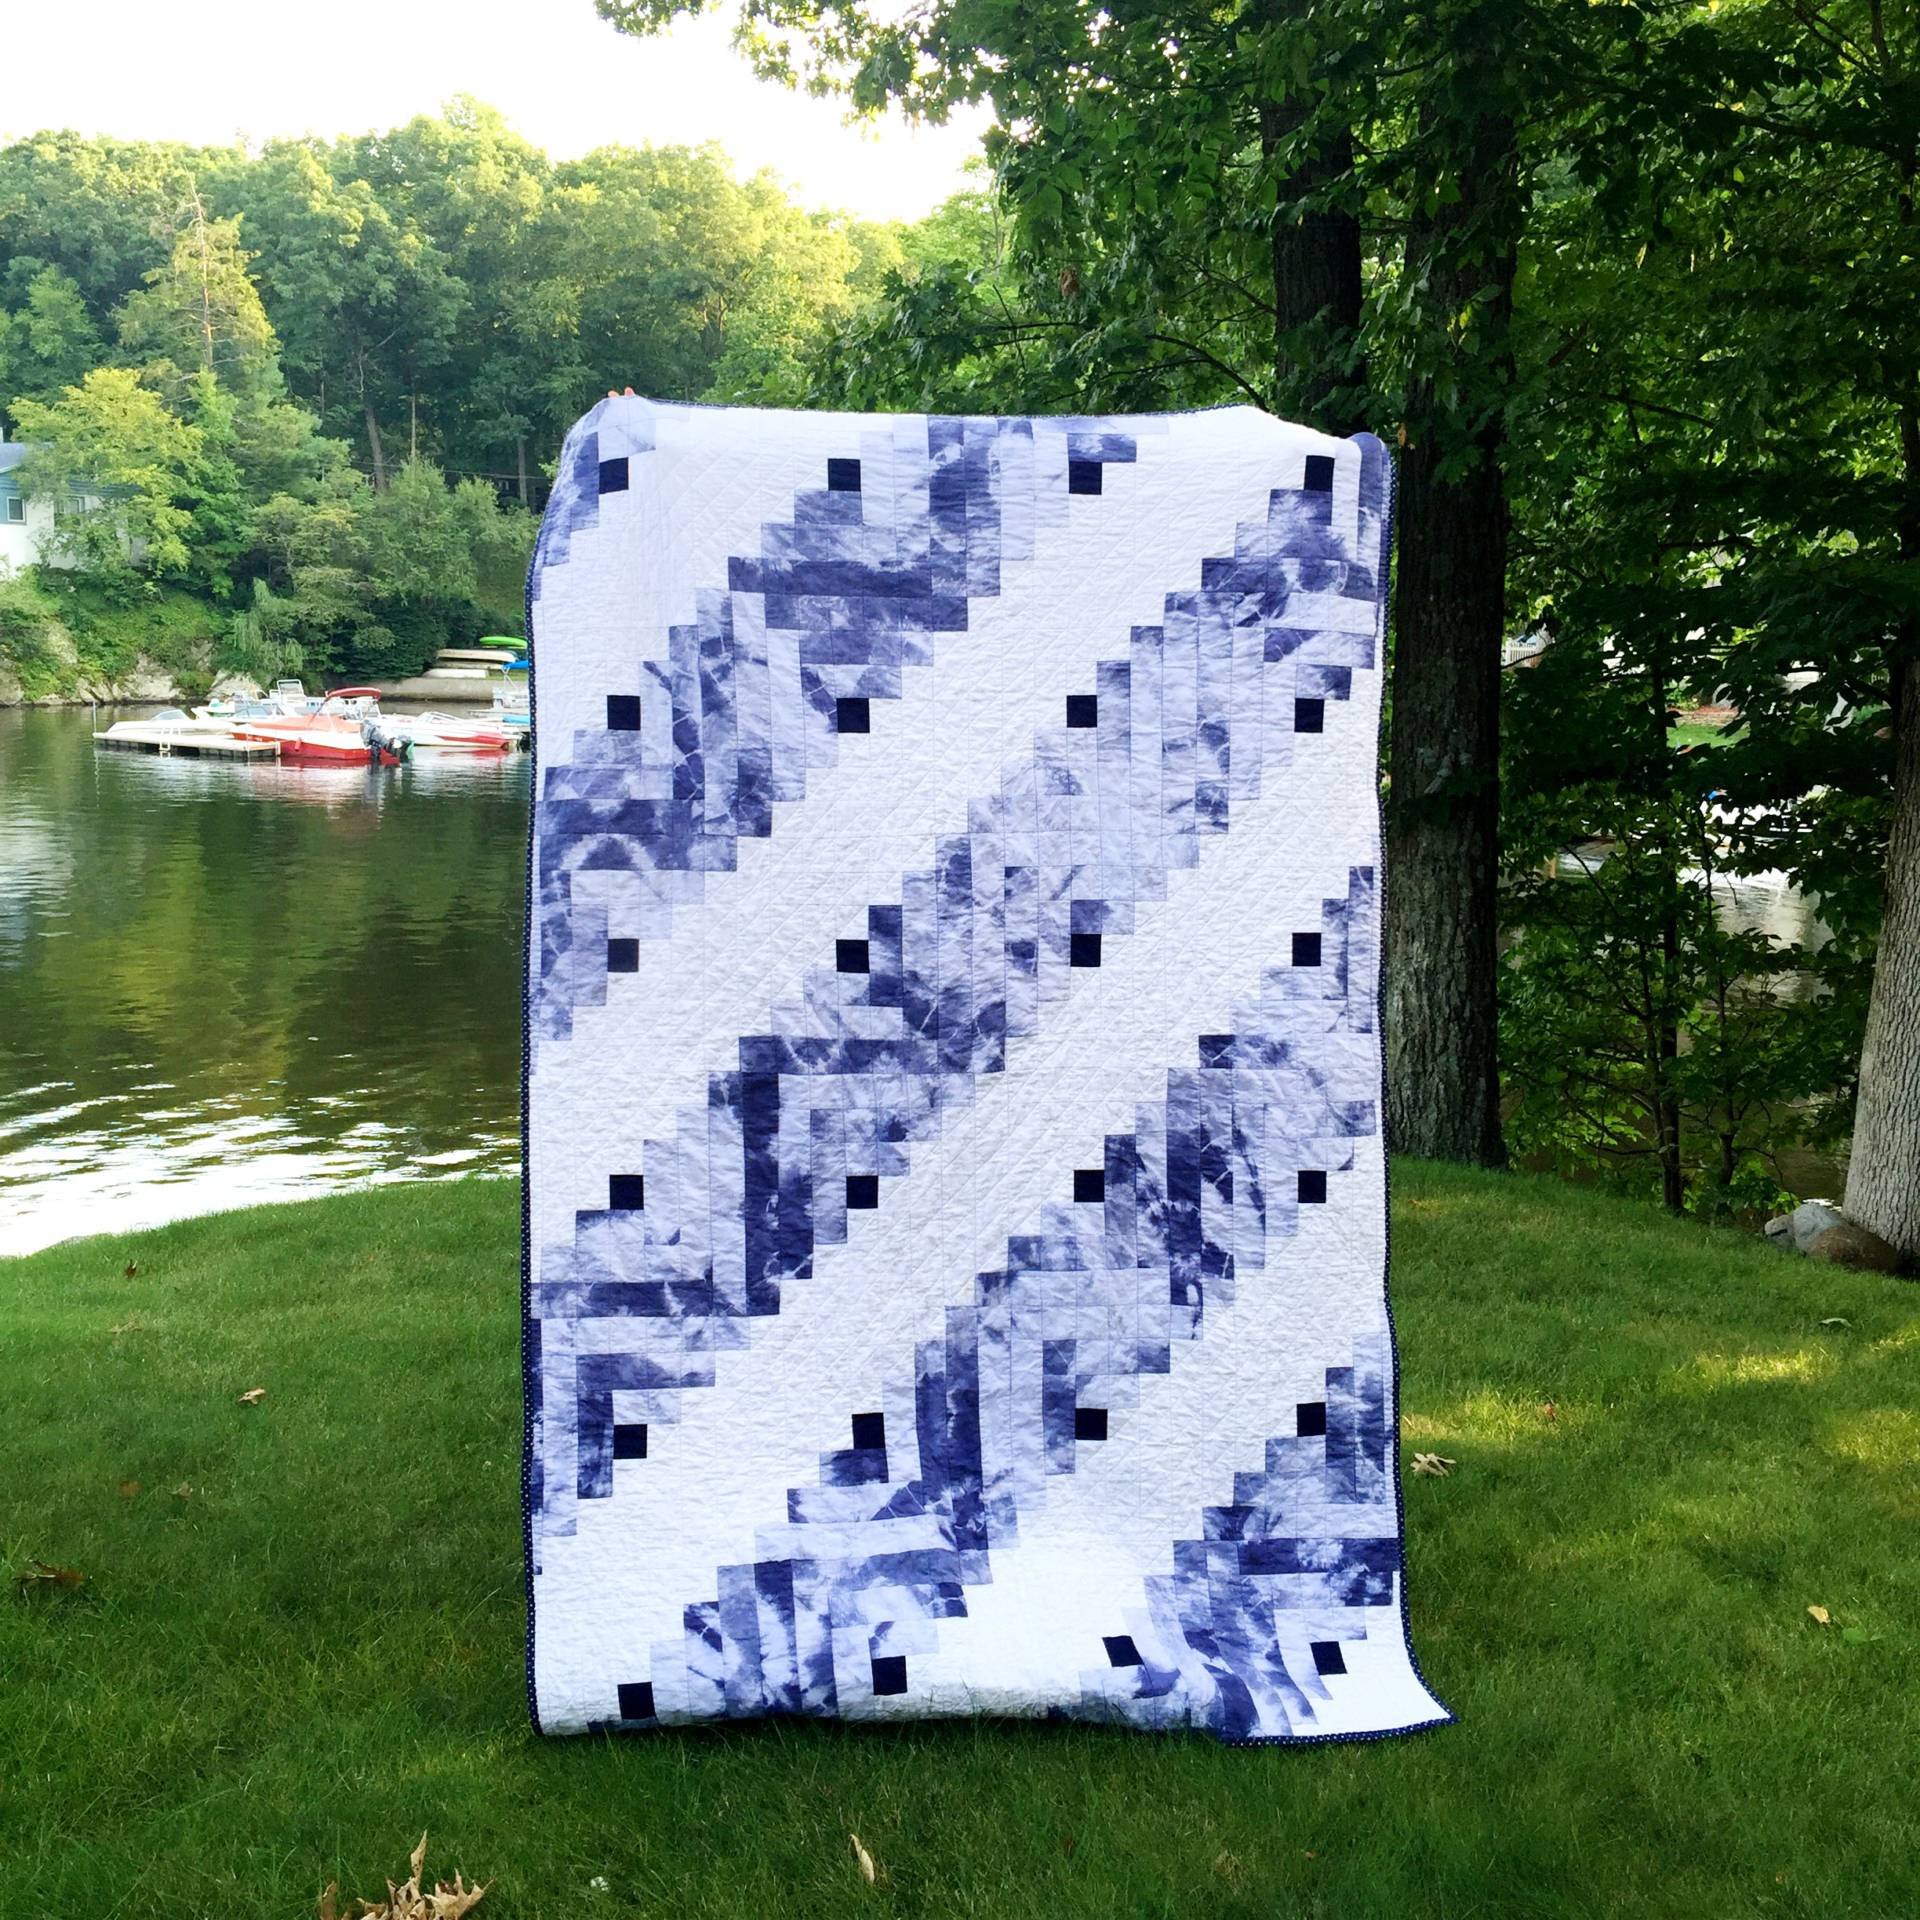 Finished shibori tie dye log cabin quilt